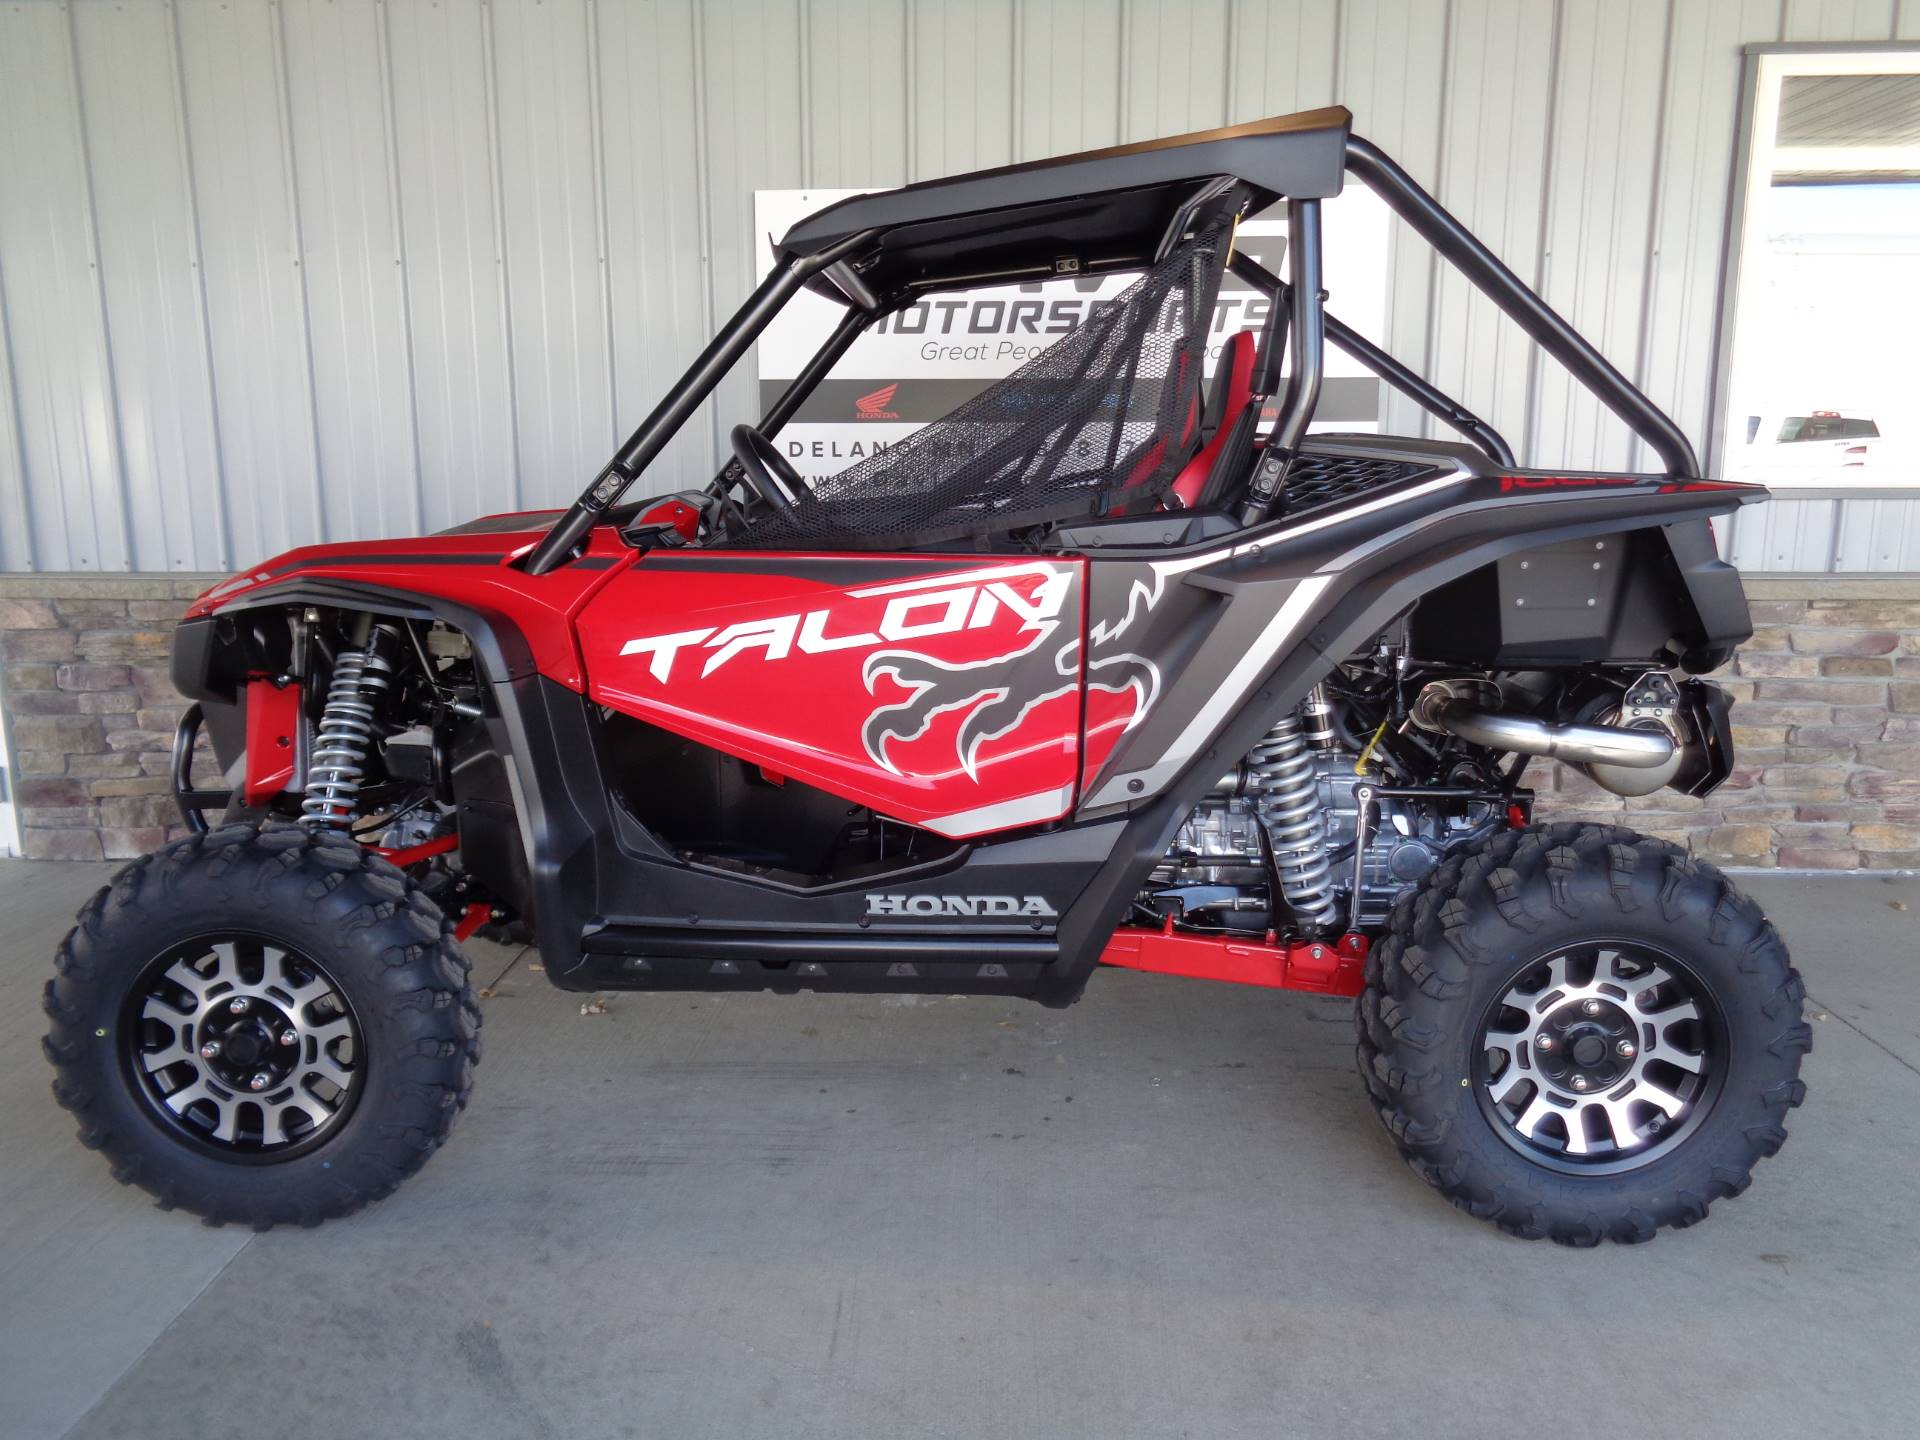 2019 Honda Talon 1000X in Delano, Minnesota - Photo 2